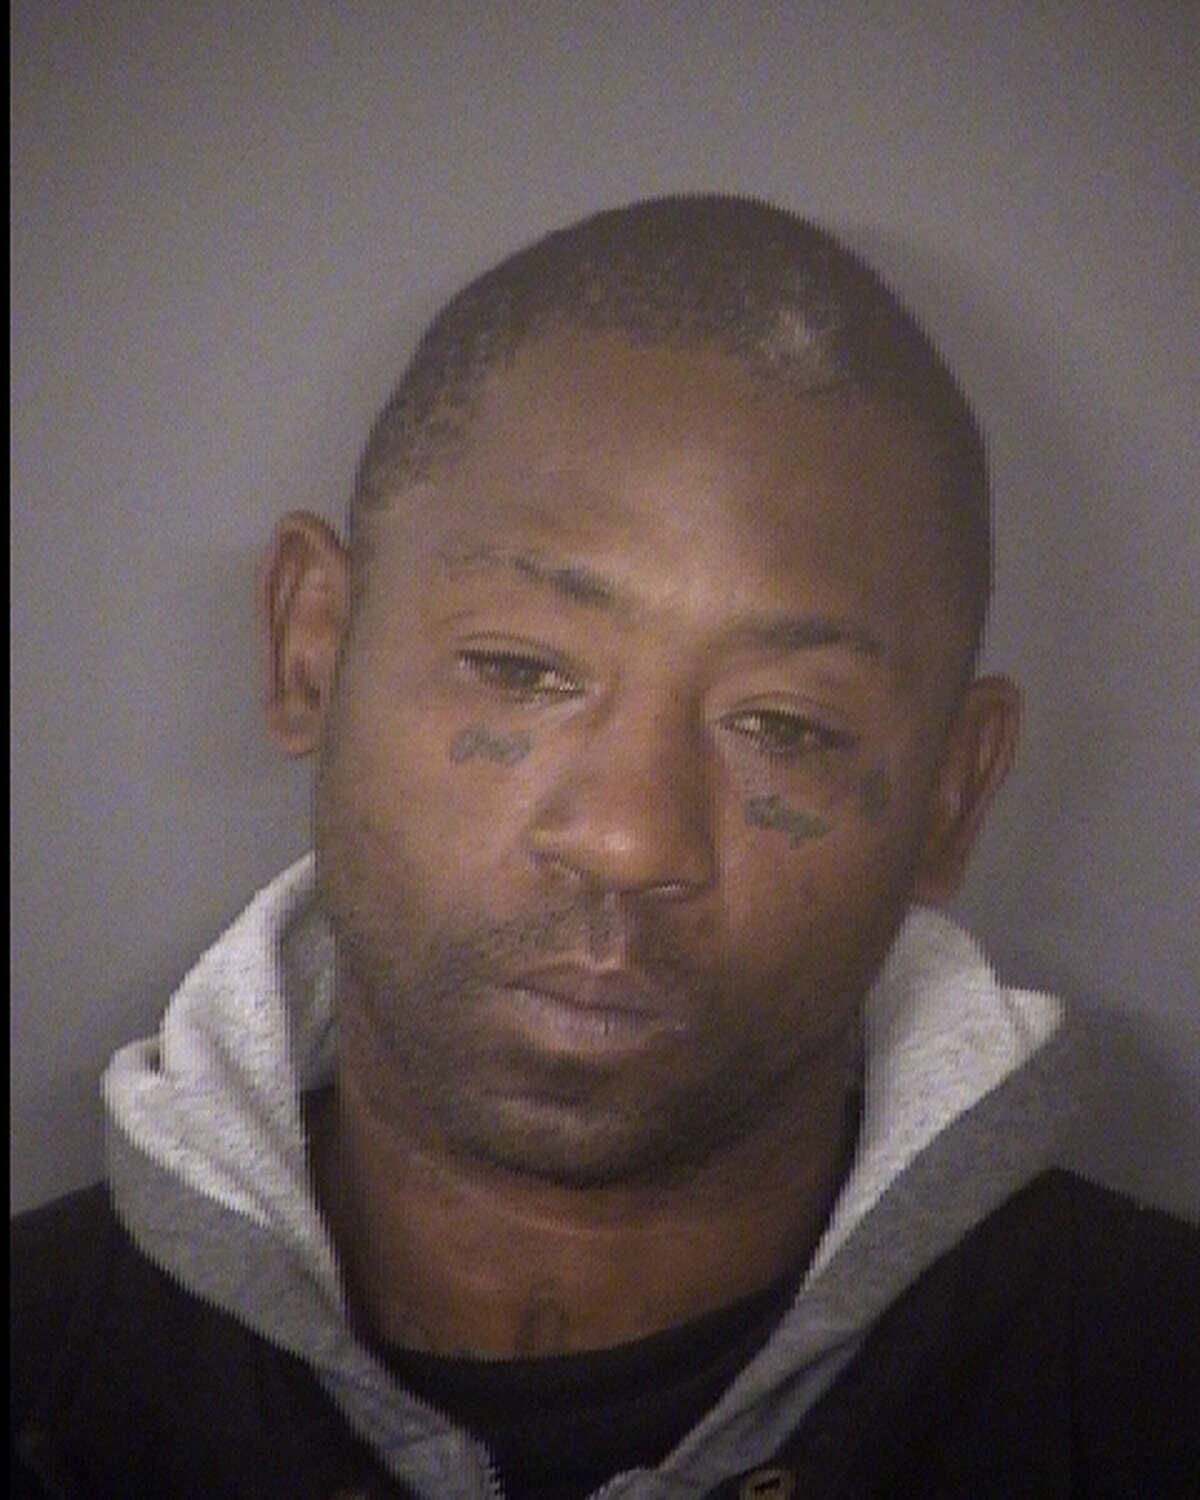 The suspect, Howard Franklin of San Antonio, now faces a charge of failure to stop and render aid resulting in death. He was booked into the Bexar County Jail on a $25,000 bond.